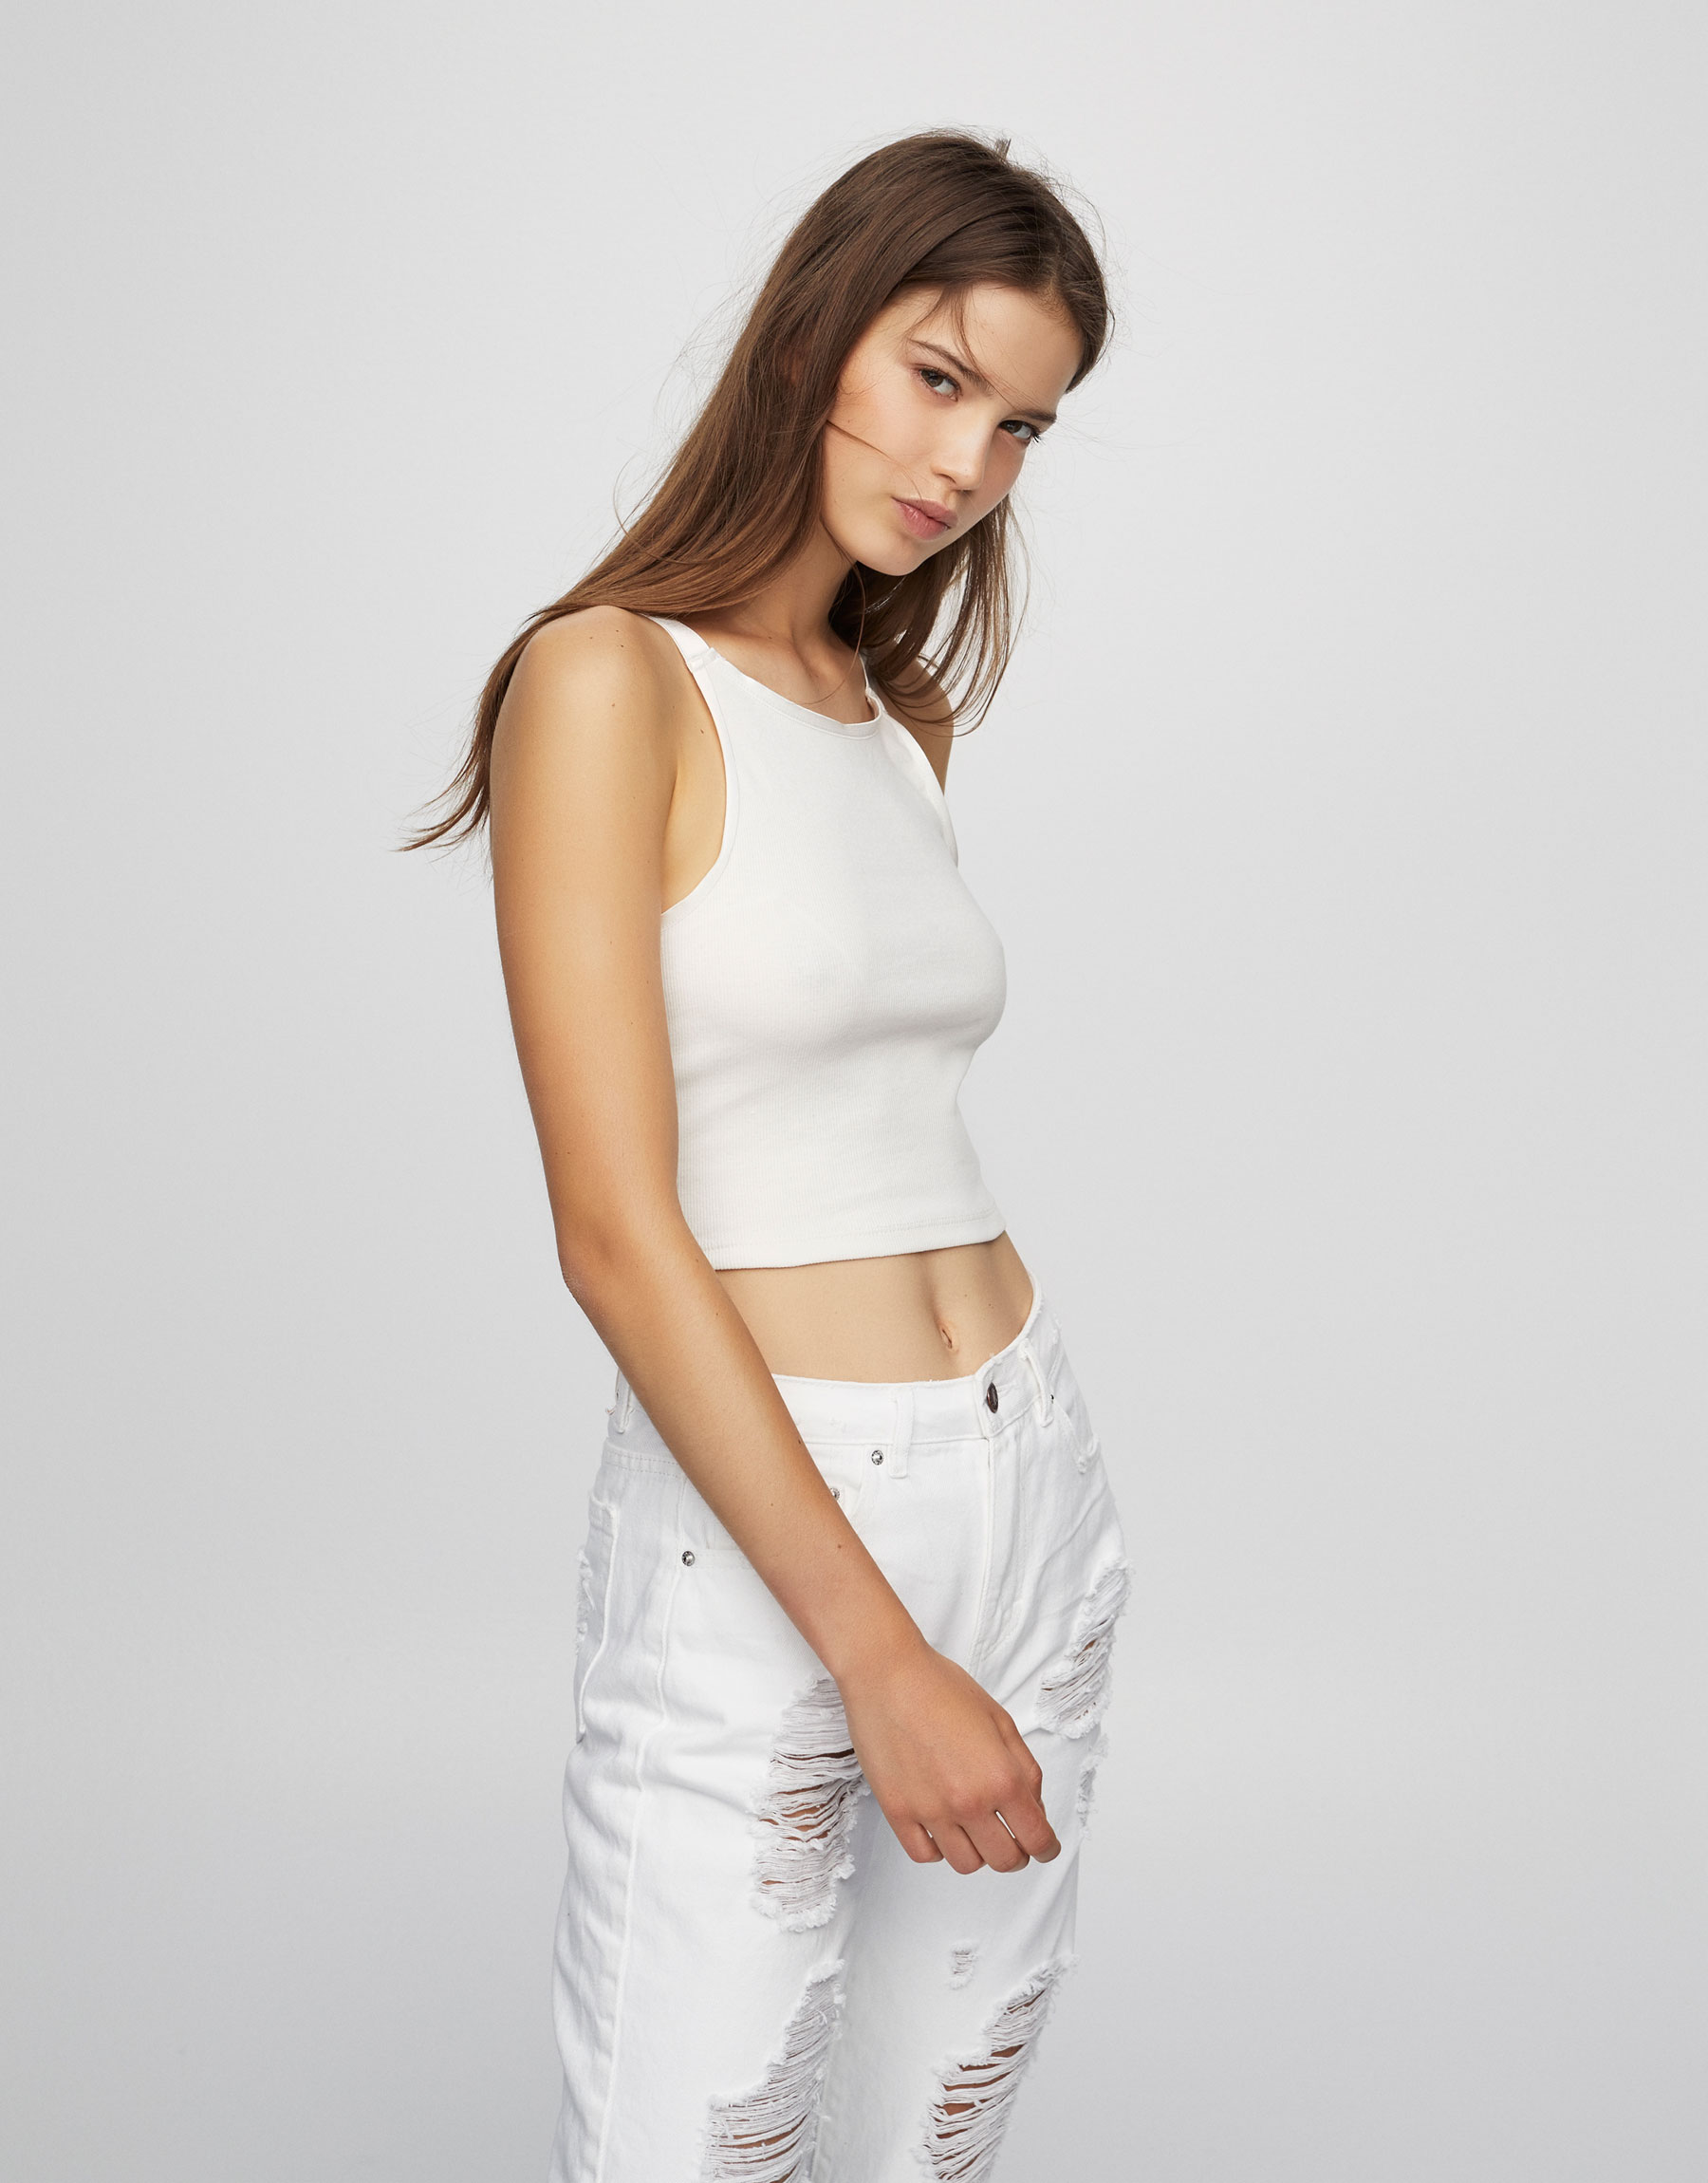 Crop top canalé de alças